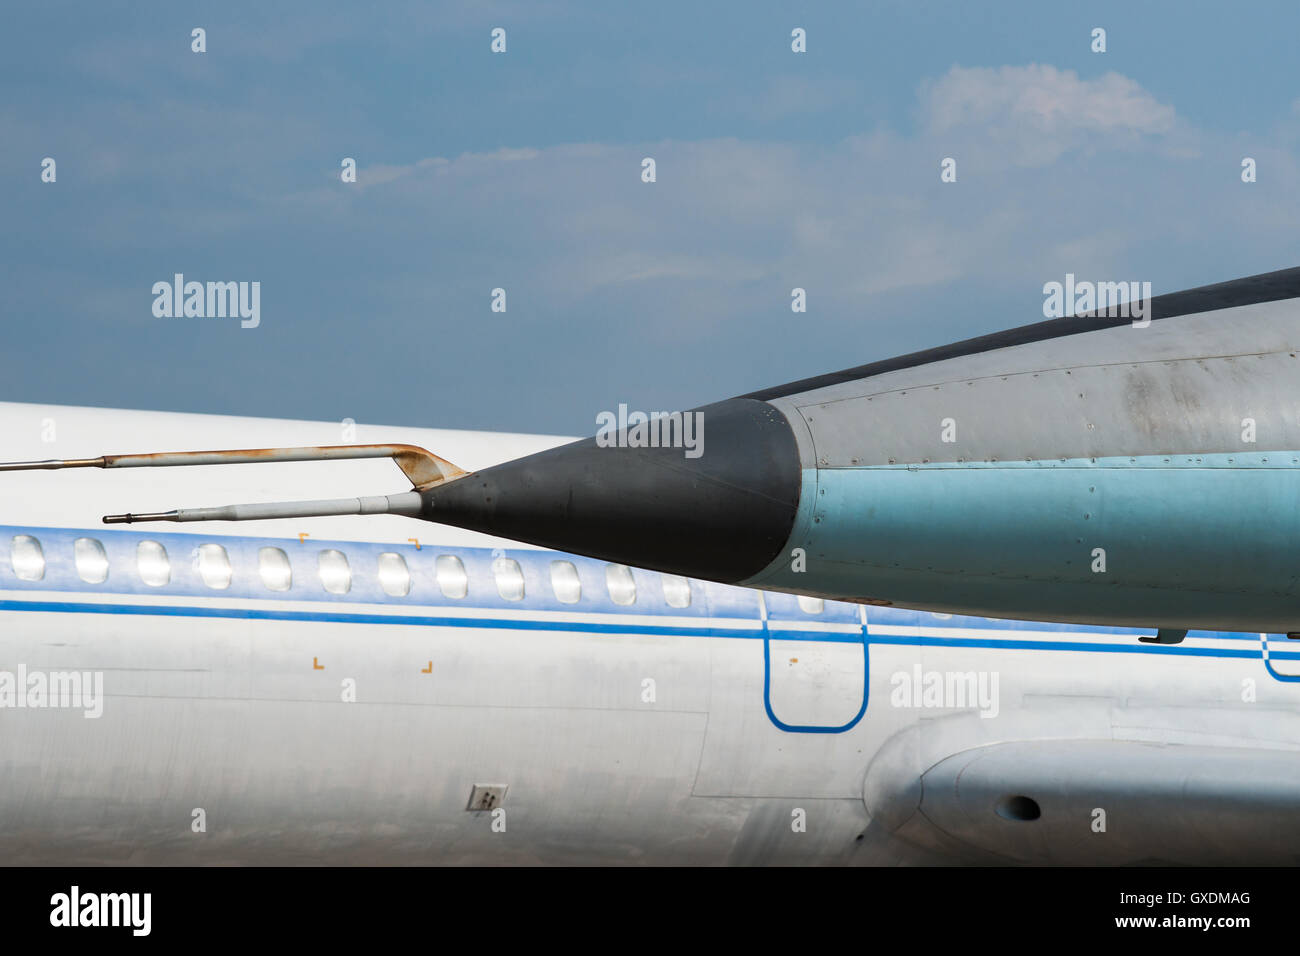 Nose of a military aircraft against the background of a fuselage or body of a vintage civil passenger plane or airliner. - Stock Image